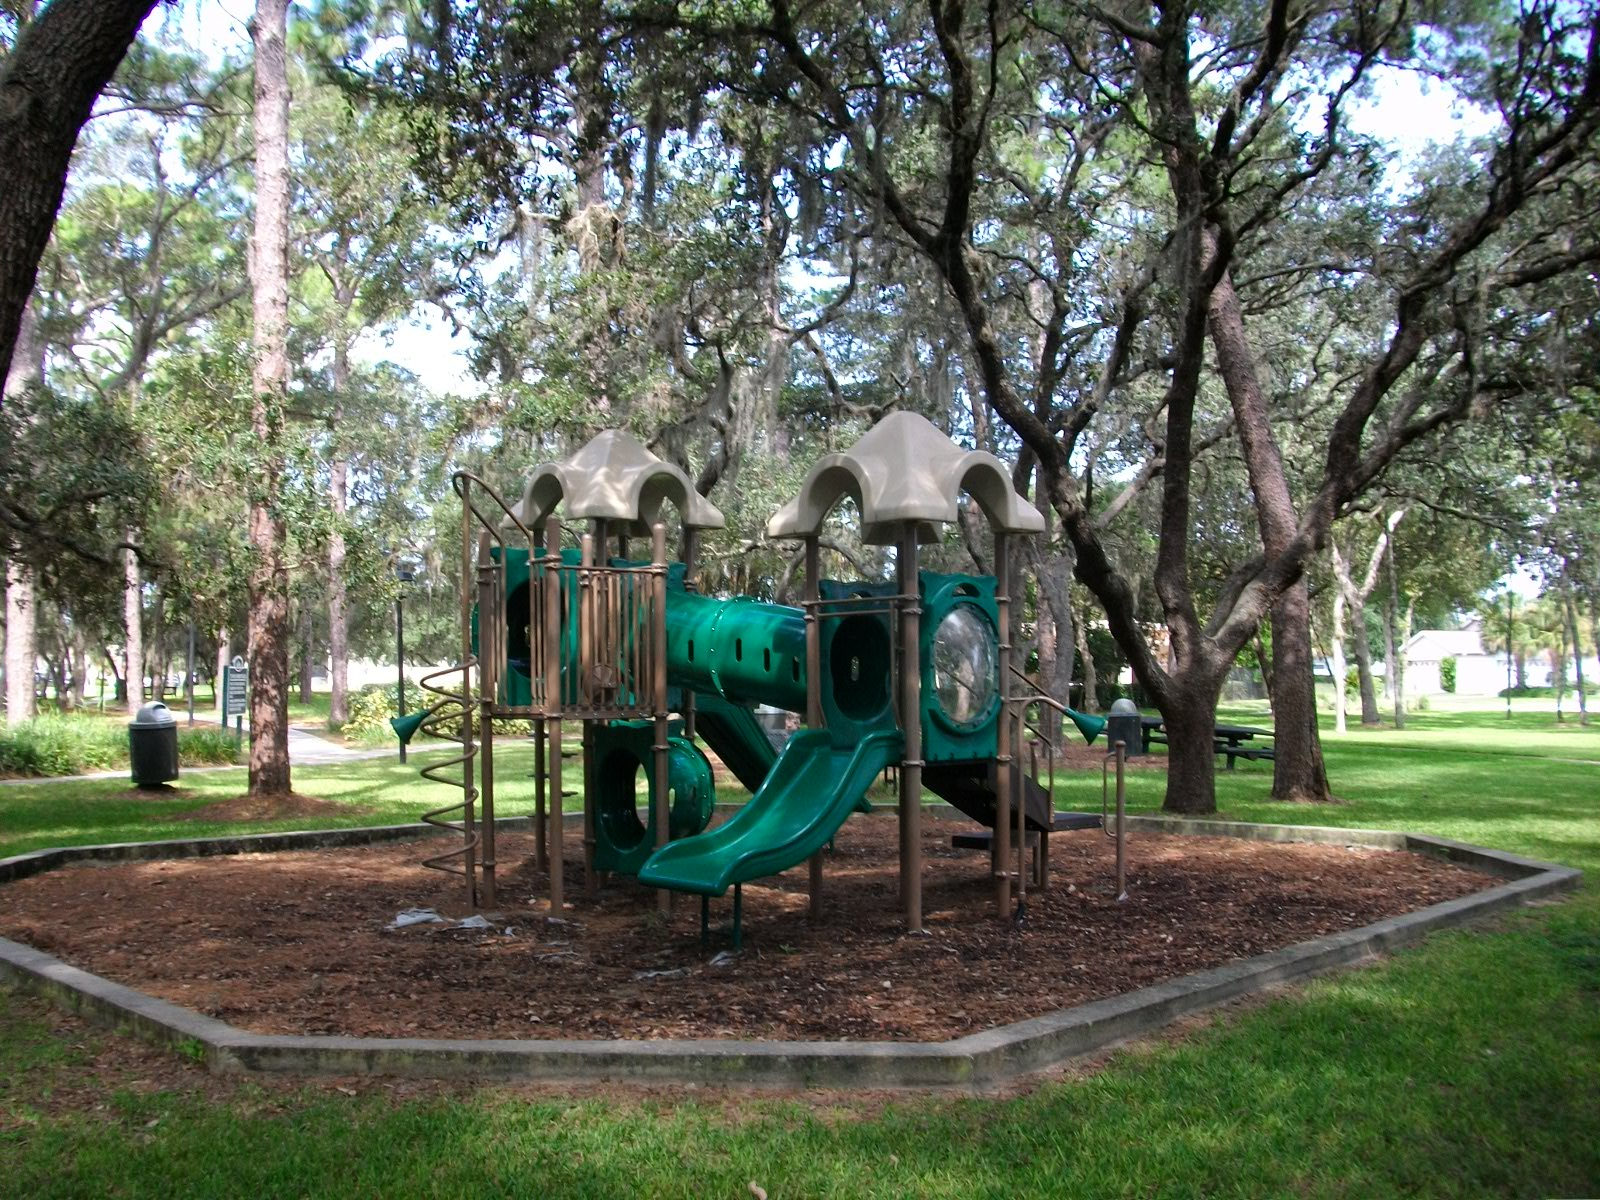 Indian Ridge Community Play Area